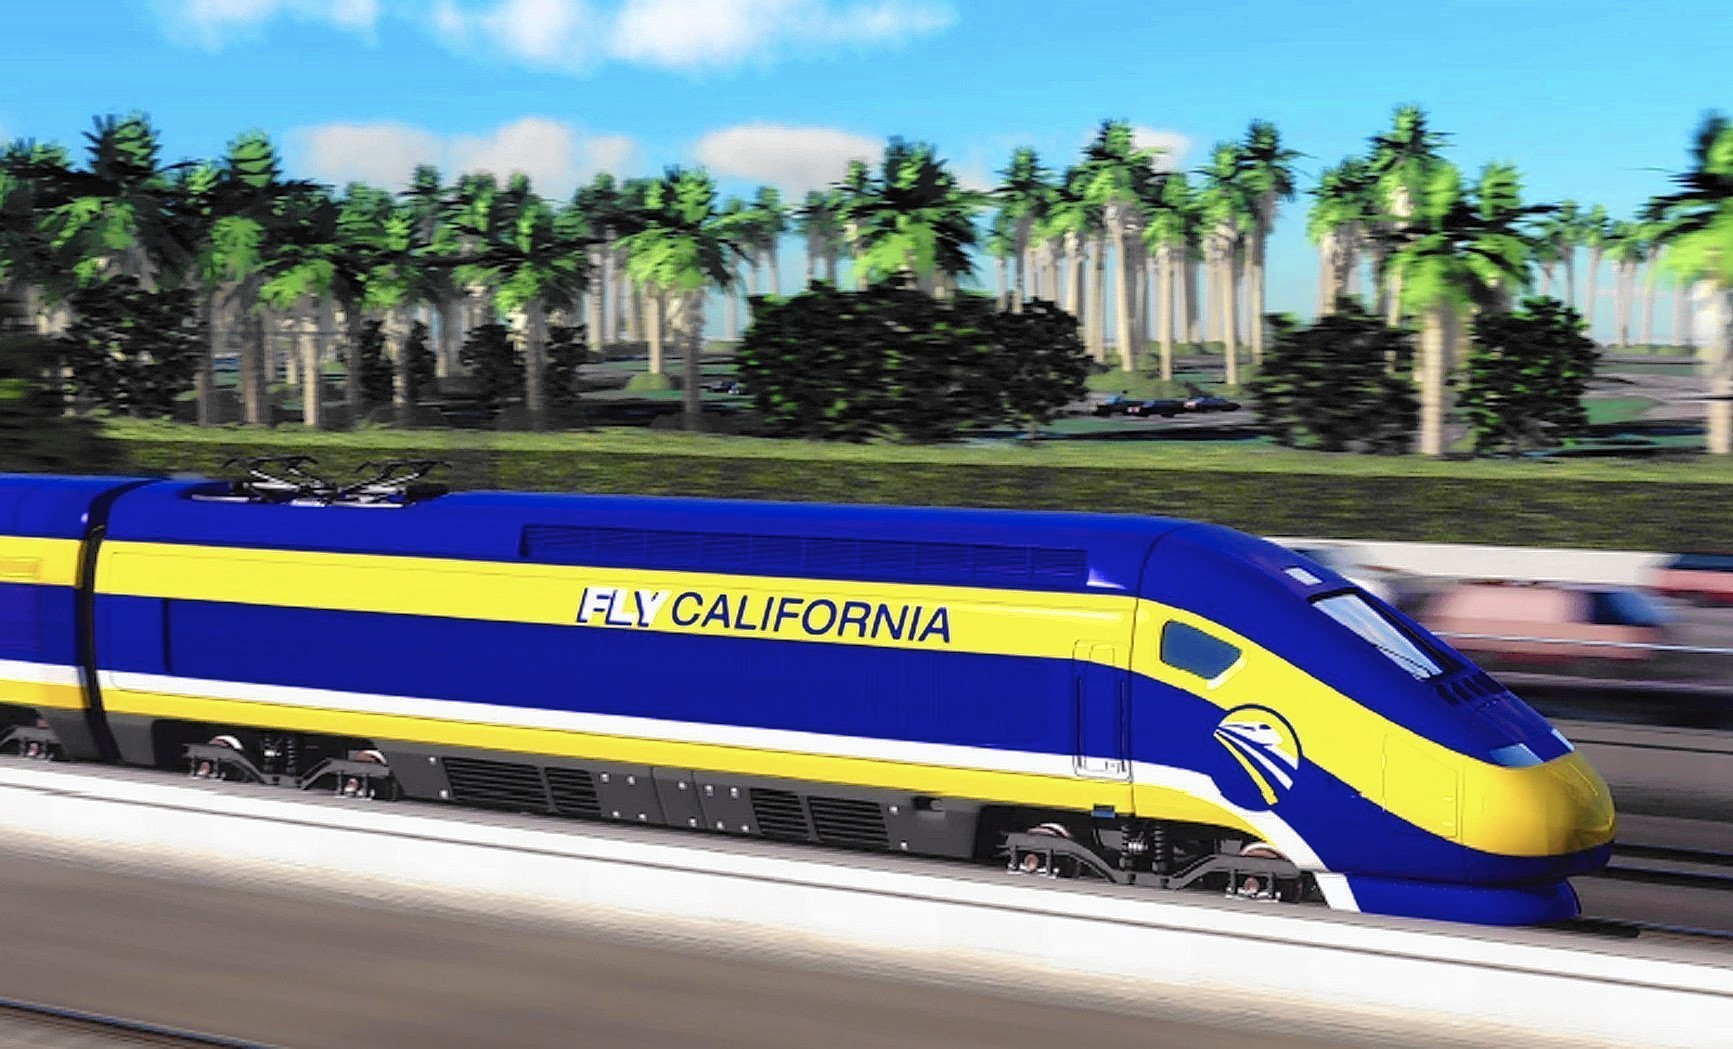 After two-year delay, construction on California's bullet train is set to start